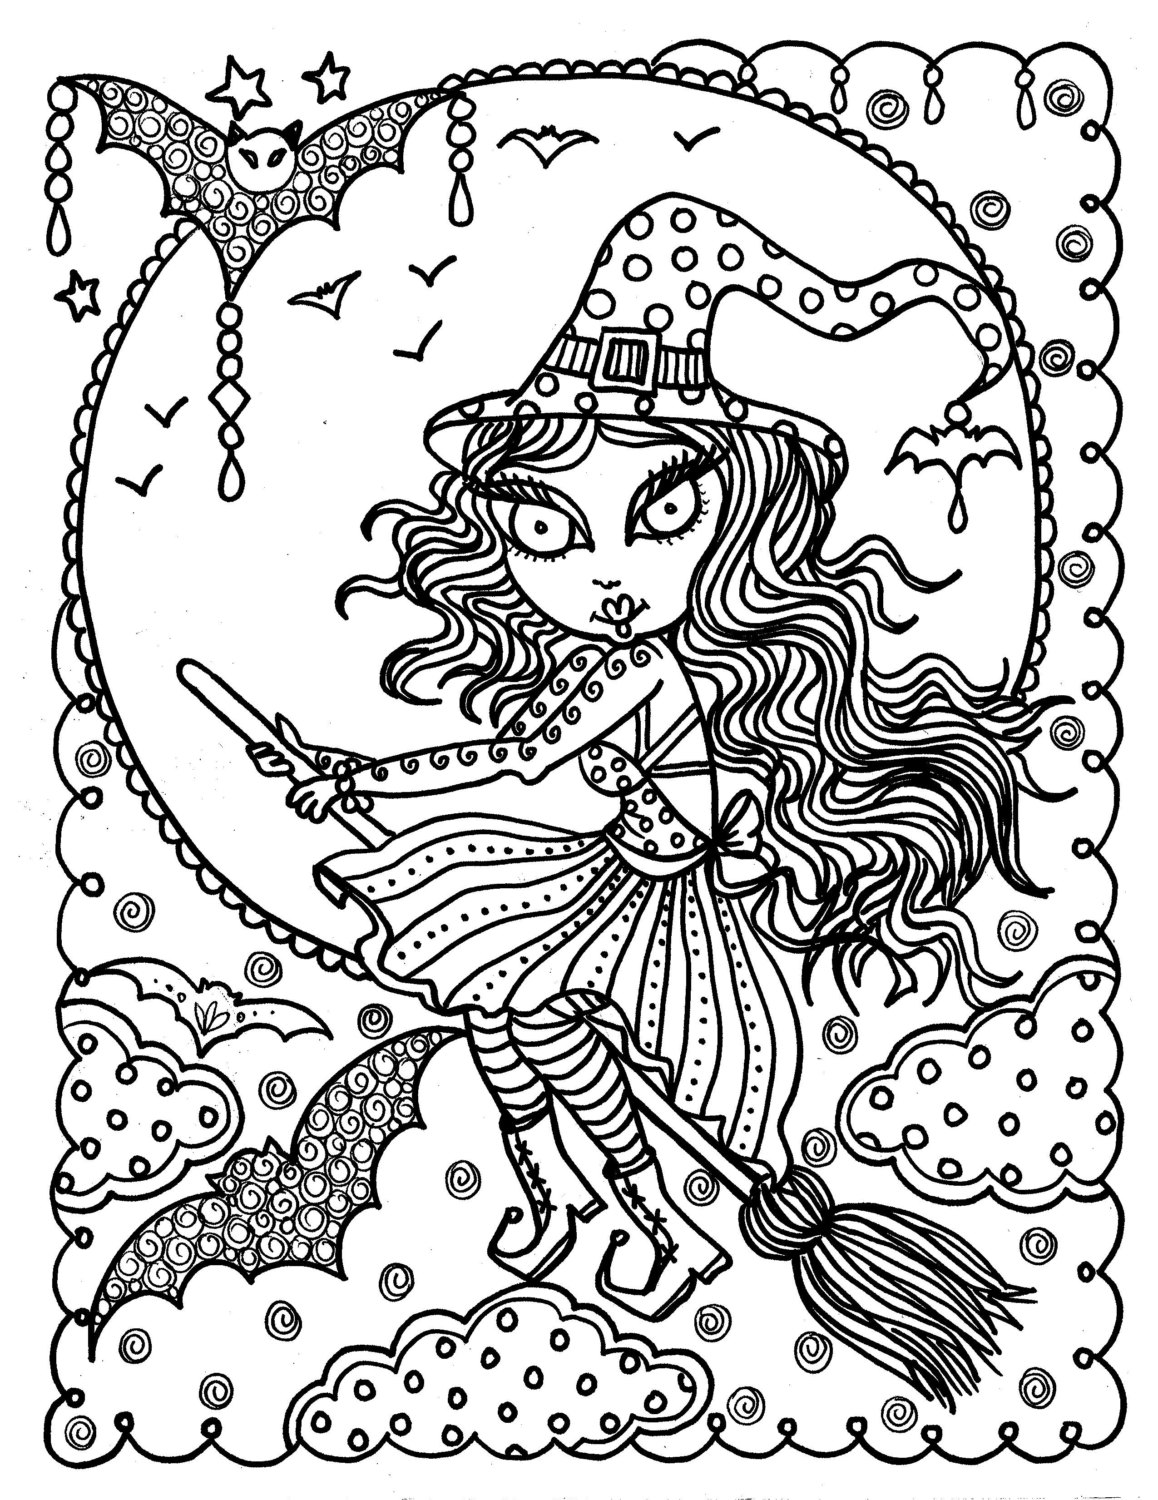 cute halloween coloring pages cute little witch cooking a potion in a cauldron halloween halloween coloring pages cute